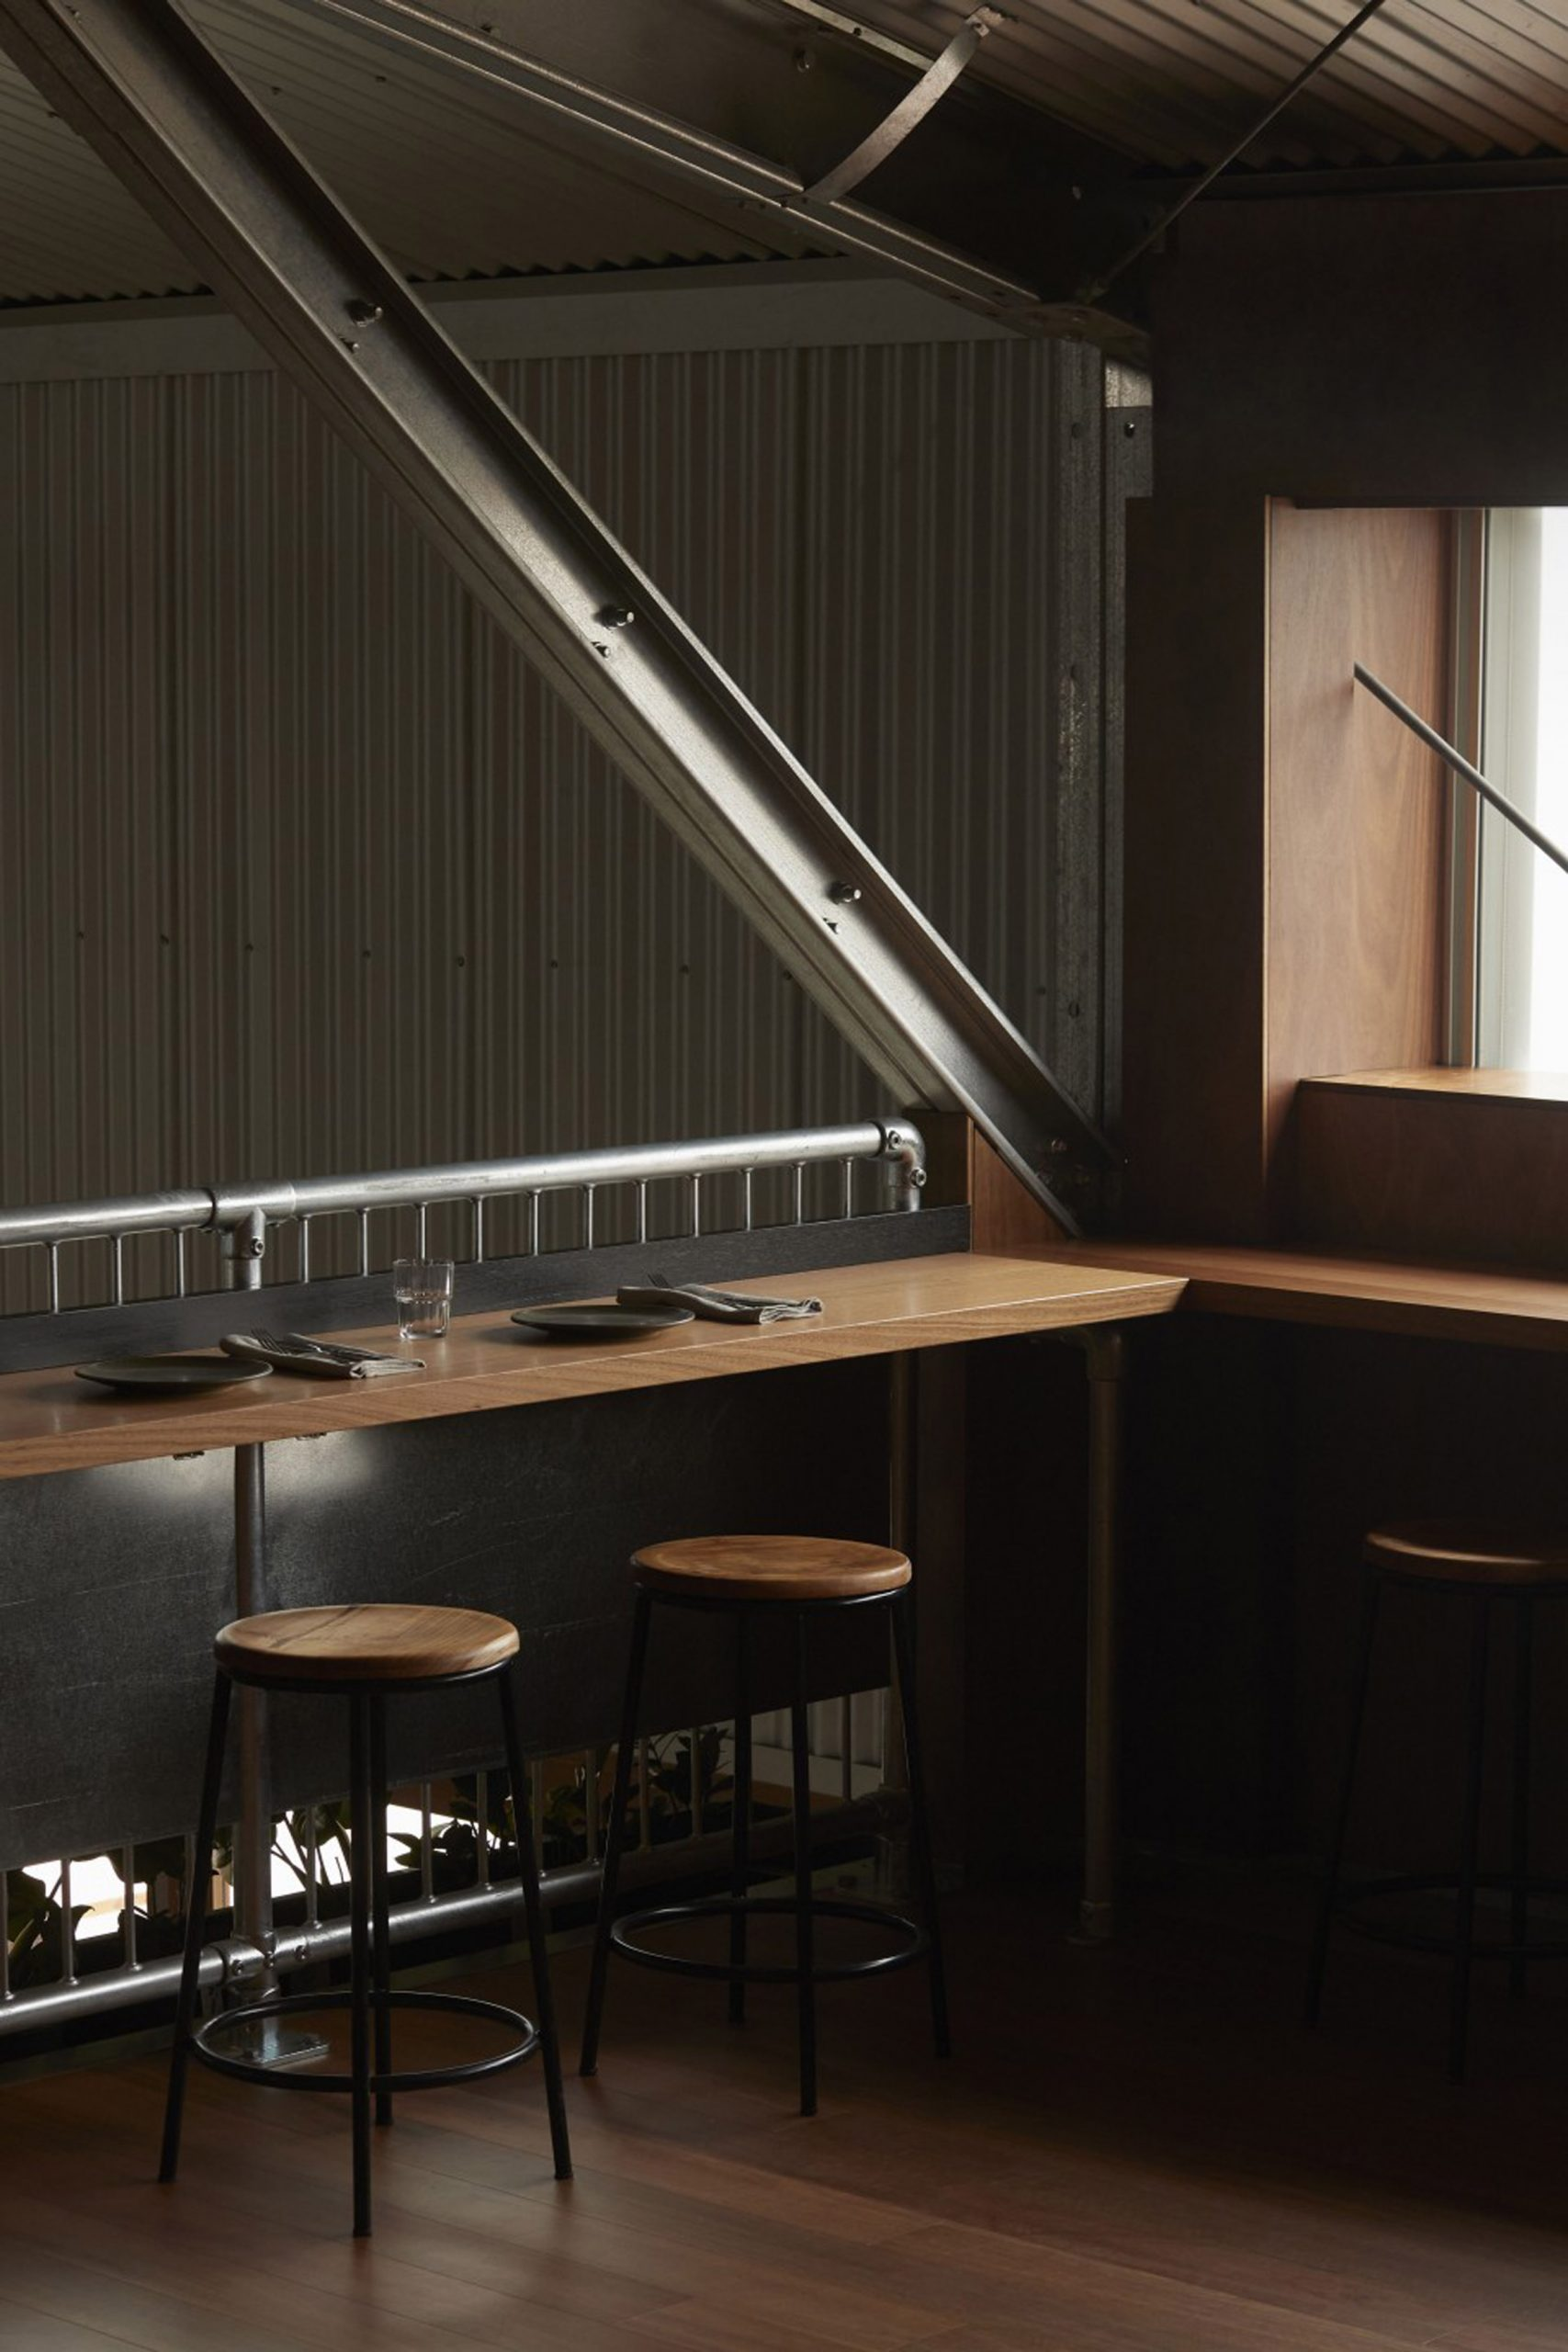 Mezzanine counter seating in restaurant interior by Pattern